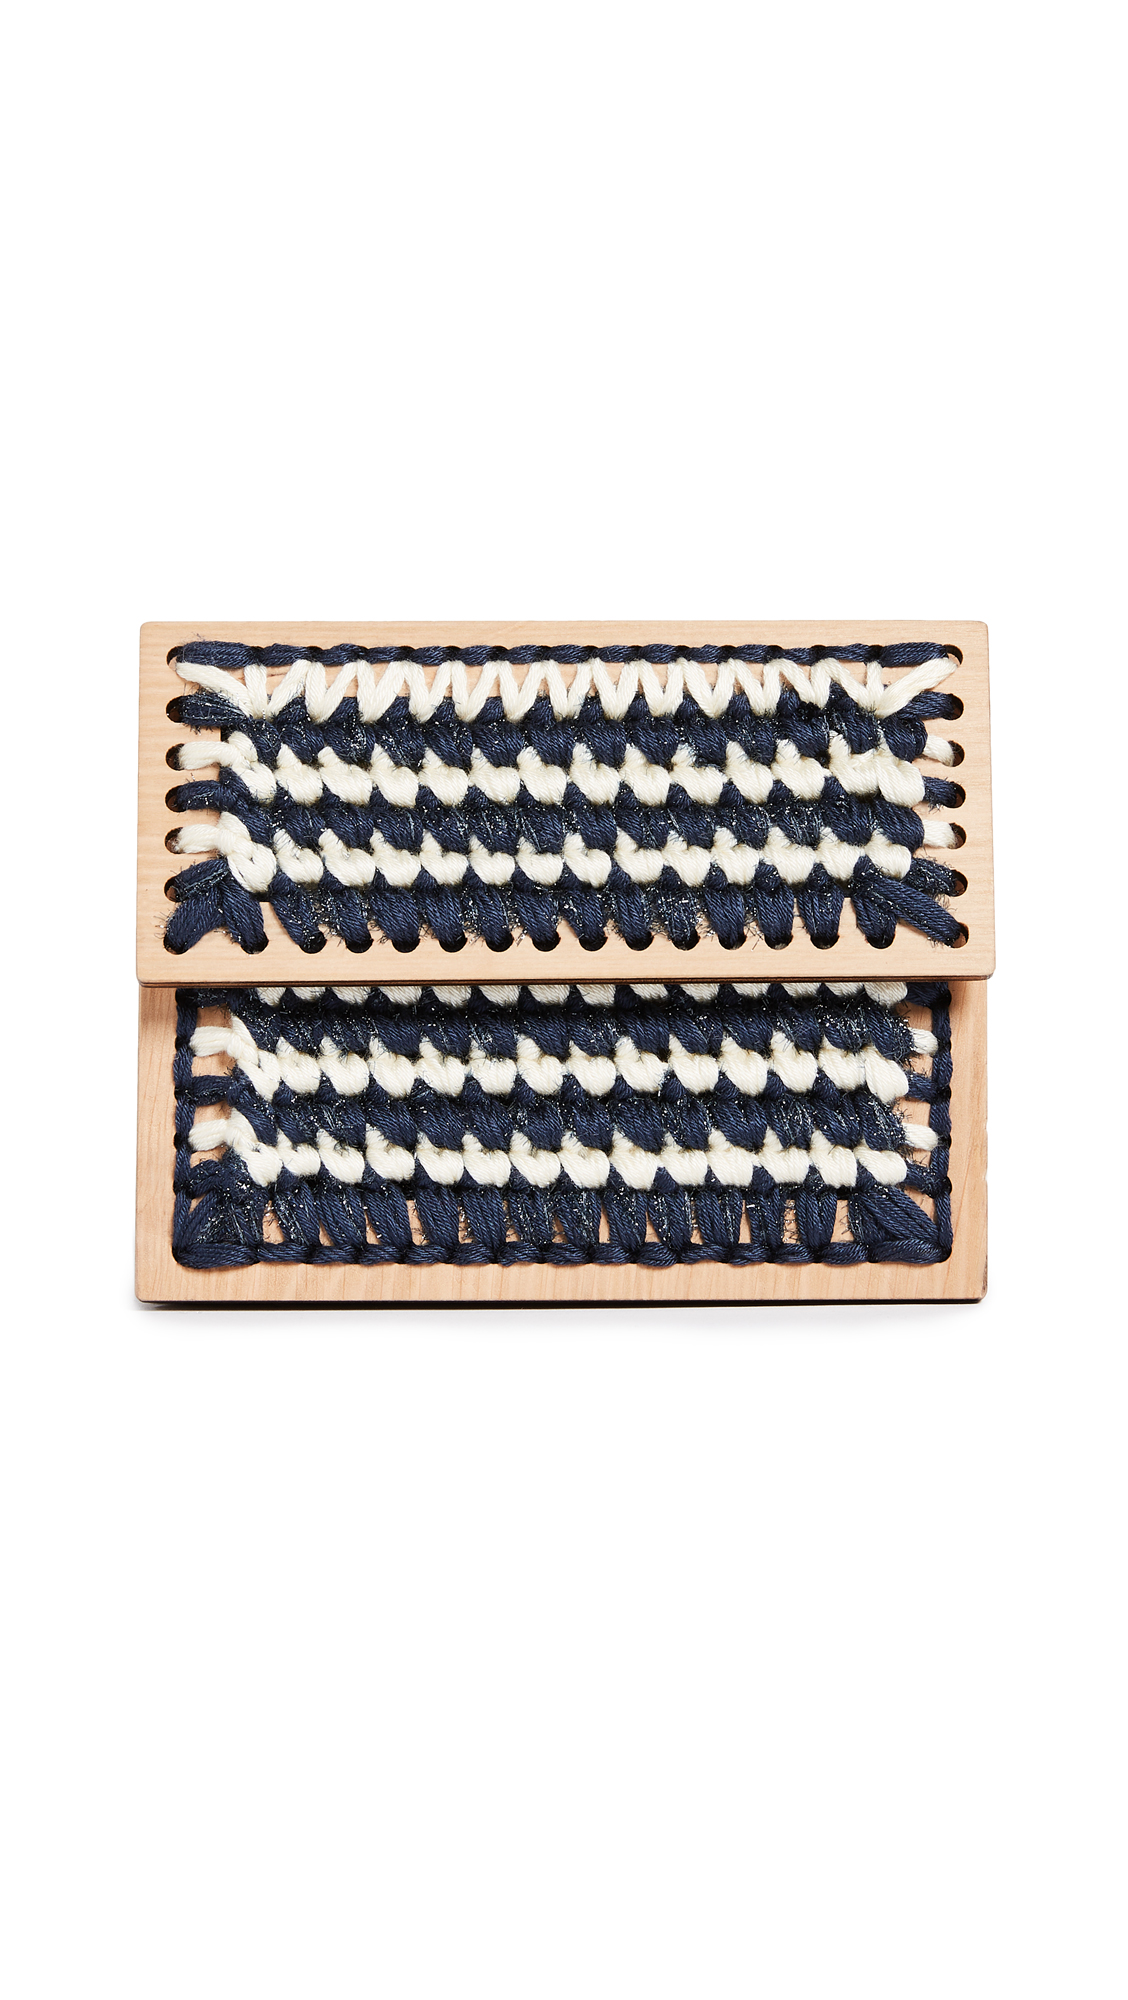 0711 Lucienne Copacabana Clutch - Blue/Cream